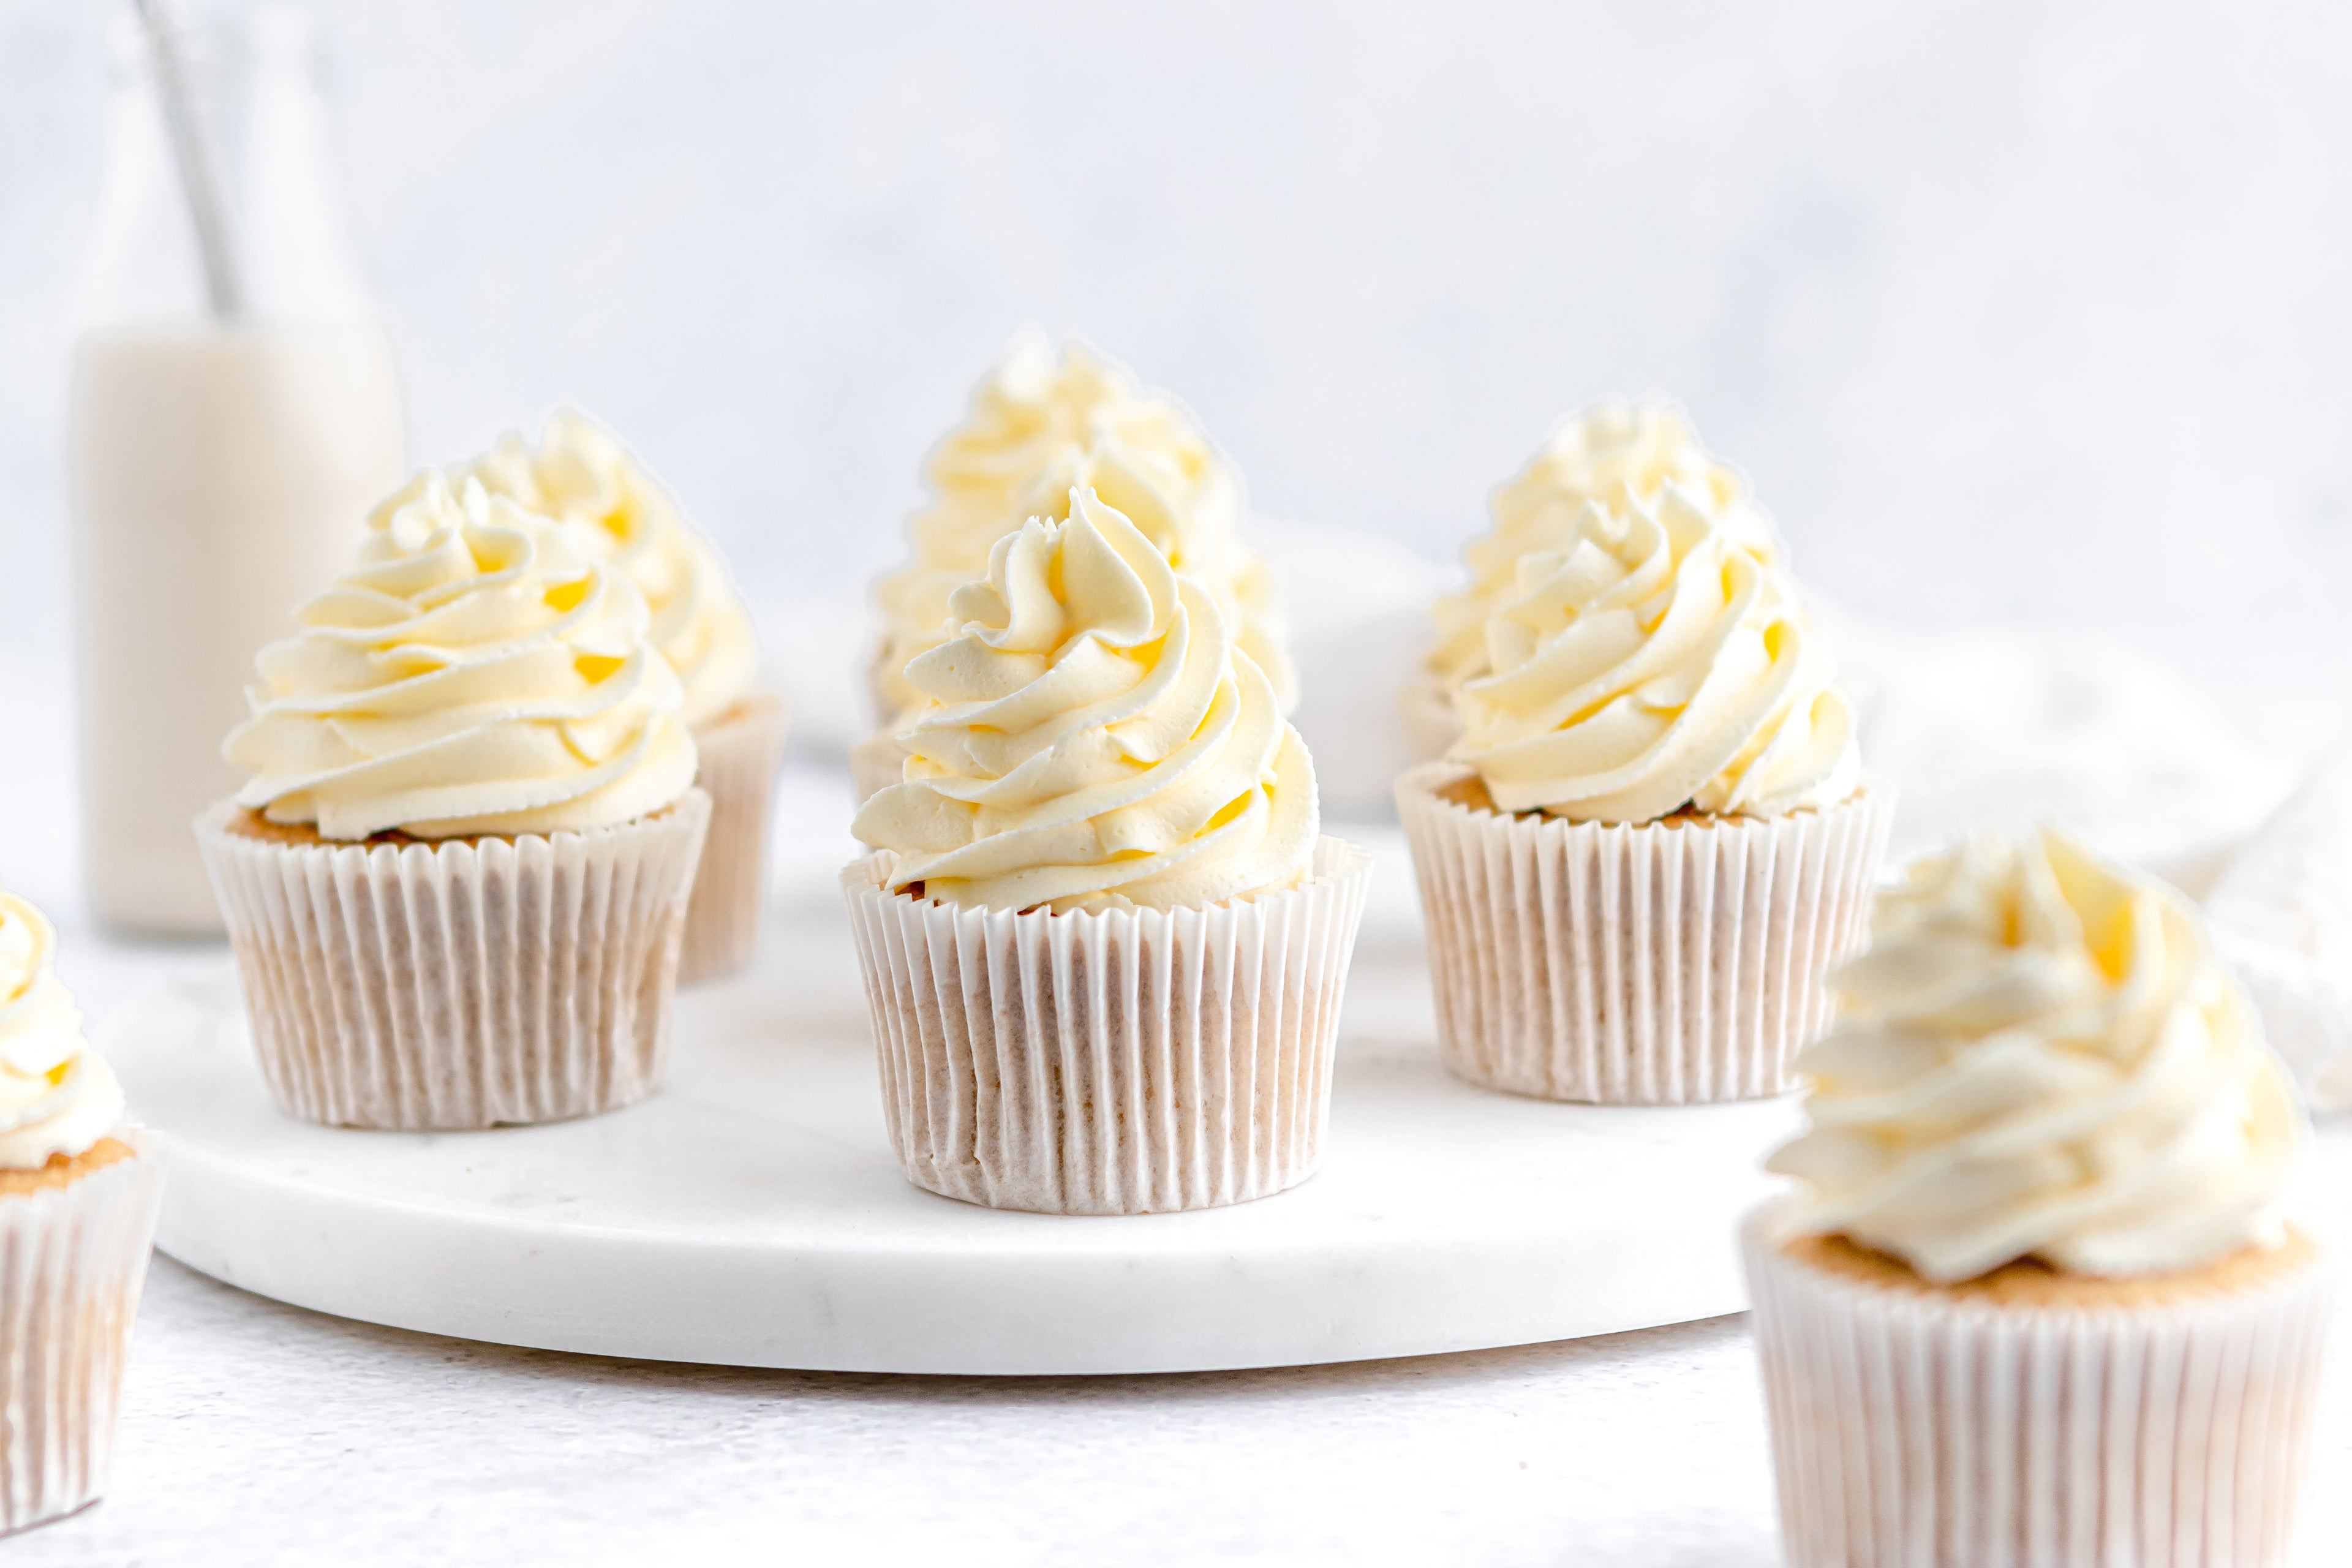 Close up of Gluten Free Cupcakes with buttercream